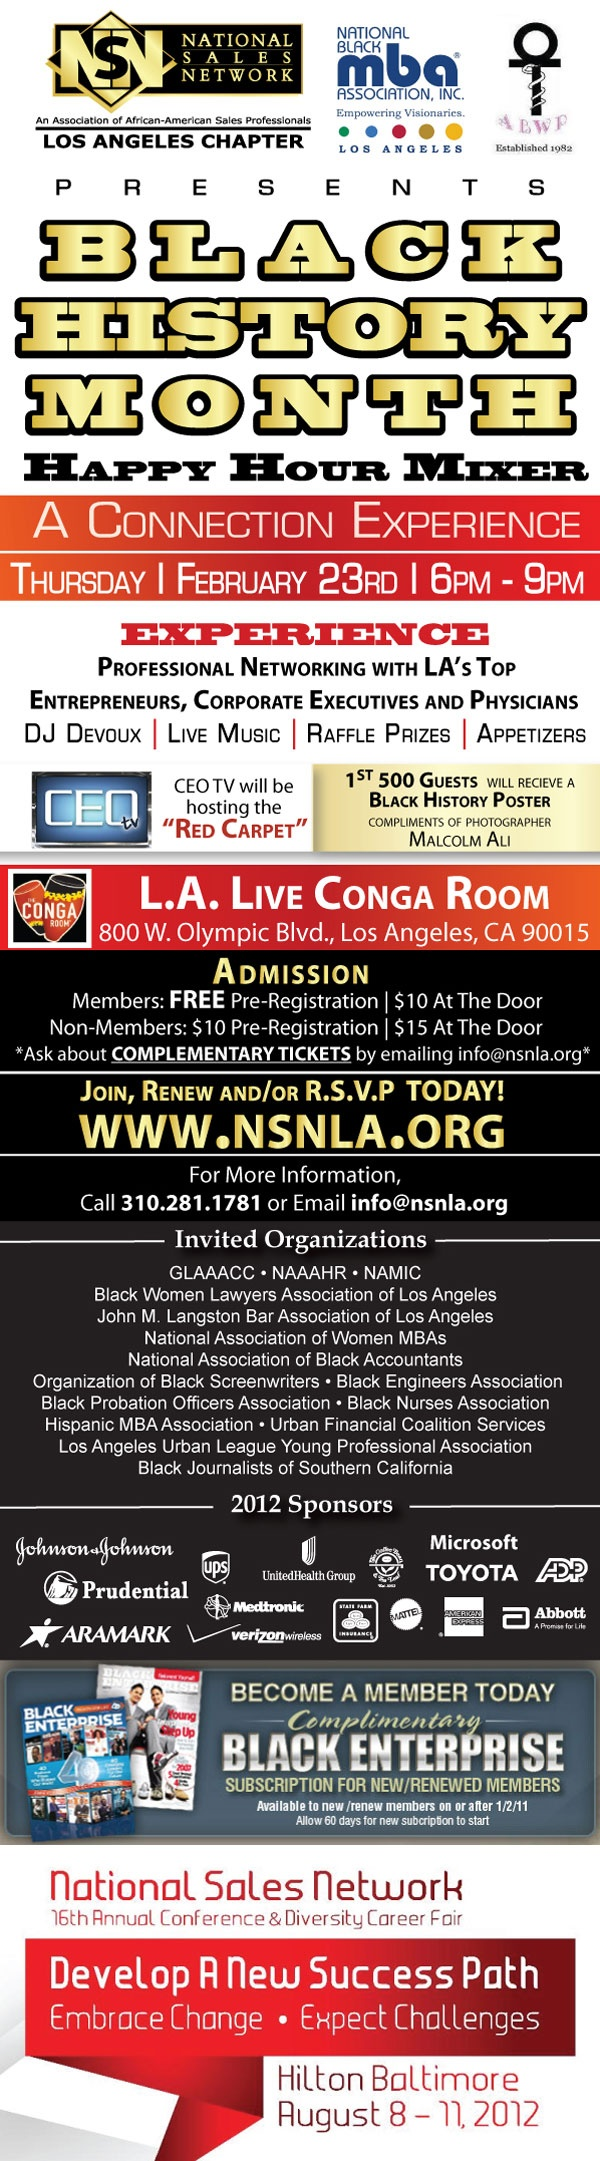 Black History Month Happy Hour Mixer at Conga Room at L.A